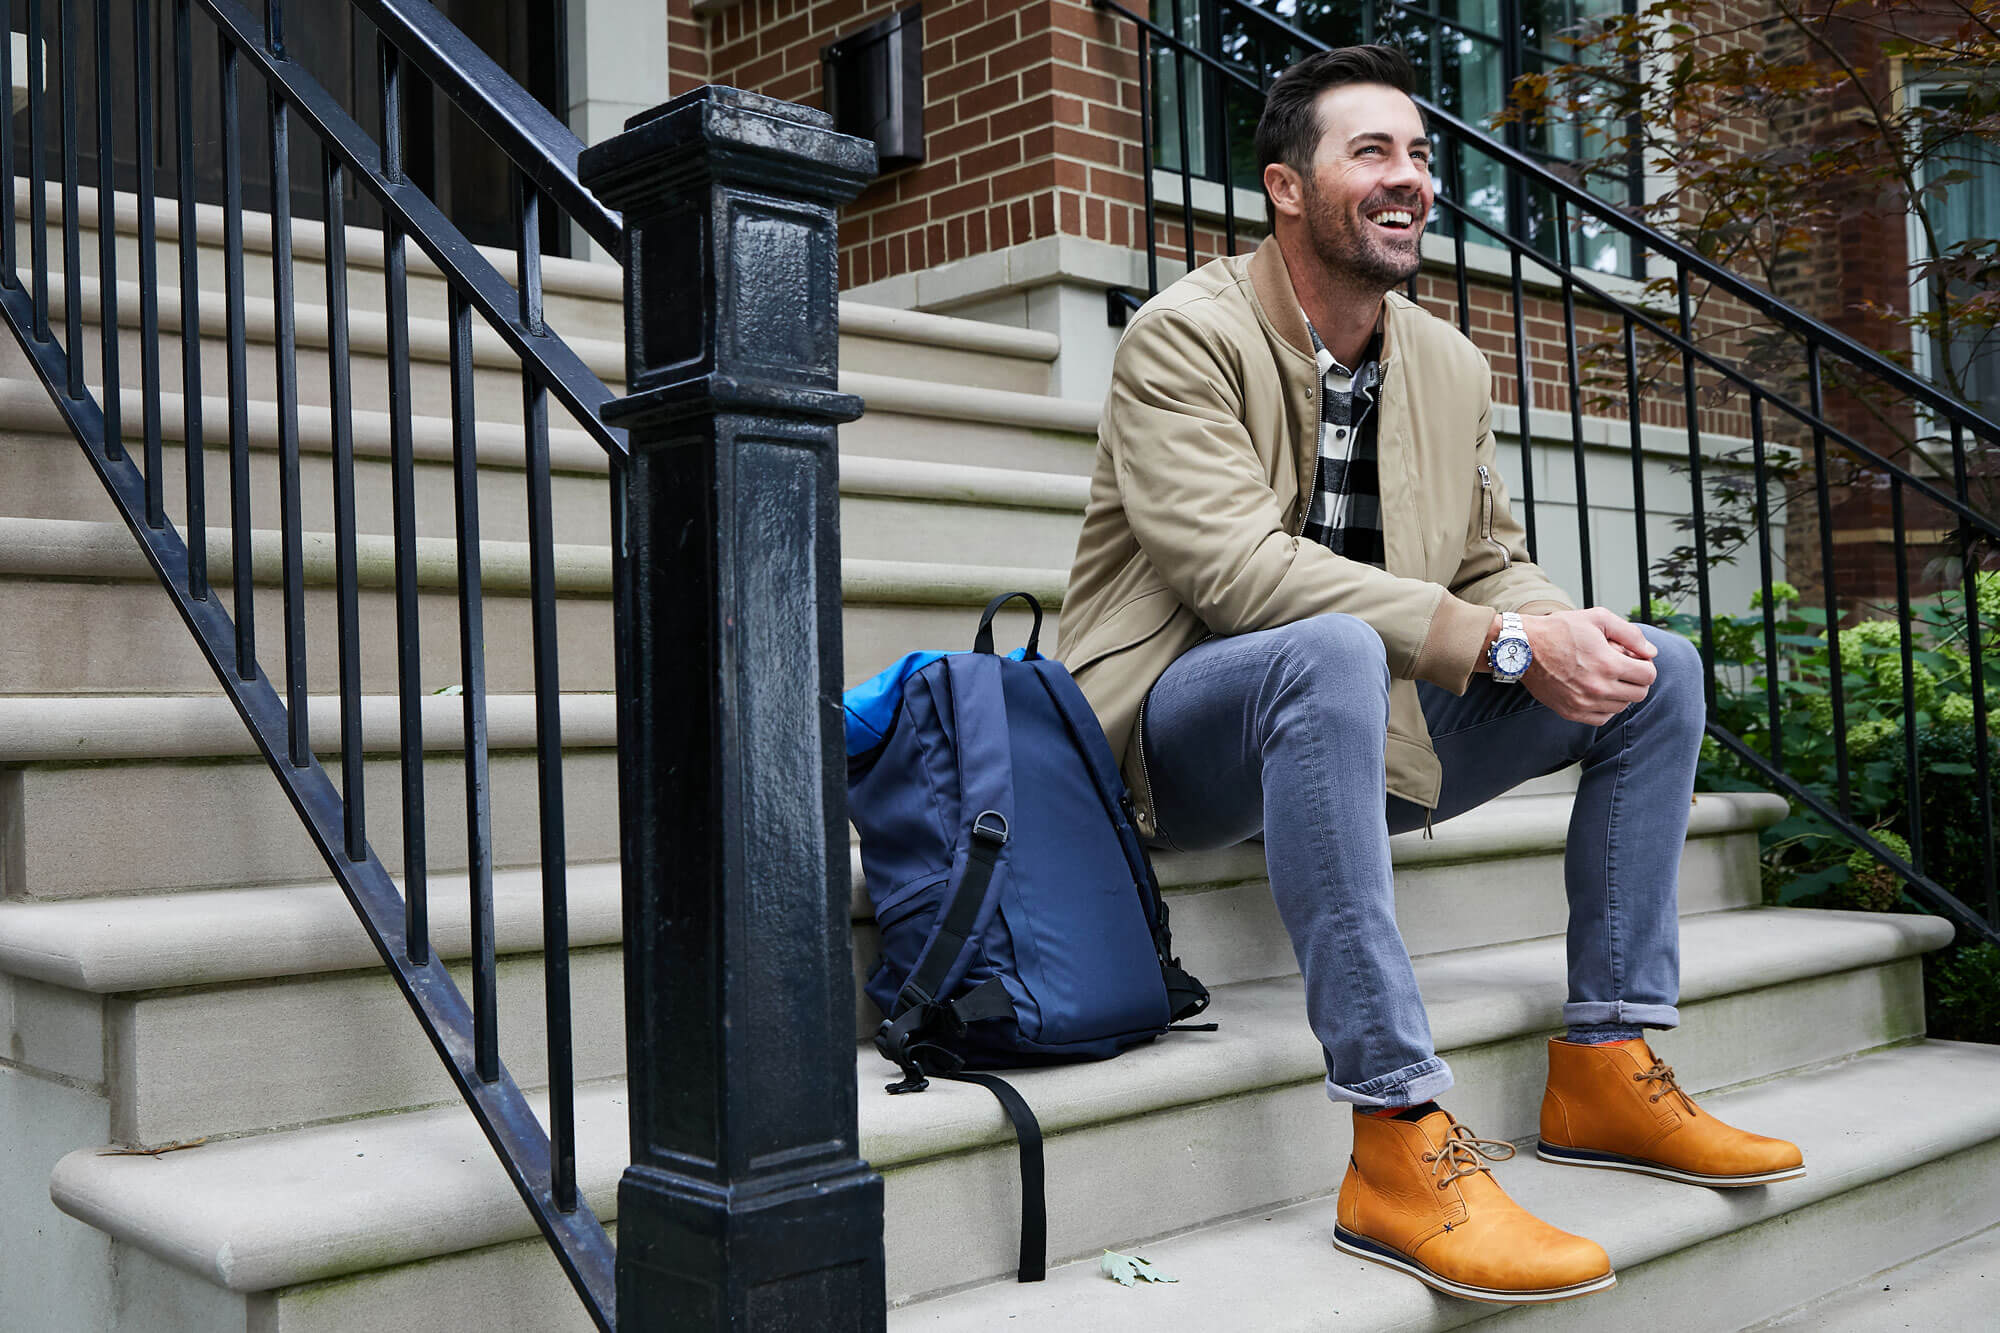 Cole Hamels sits on a stoop in Chicago, Illinois wearing blue chinos, a buffalo checkered shirt, tan jacket, blue backpack, and Rye HM x Nokona Adobe Desert Boots. He's smiling at someone standing in front of him, out of frame.